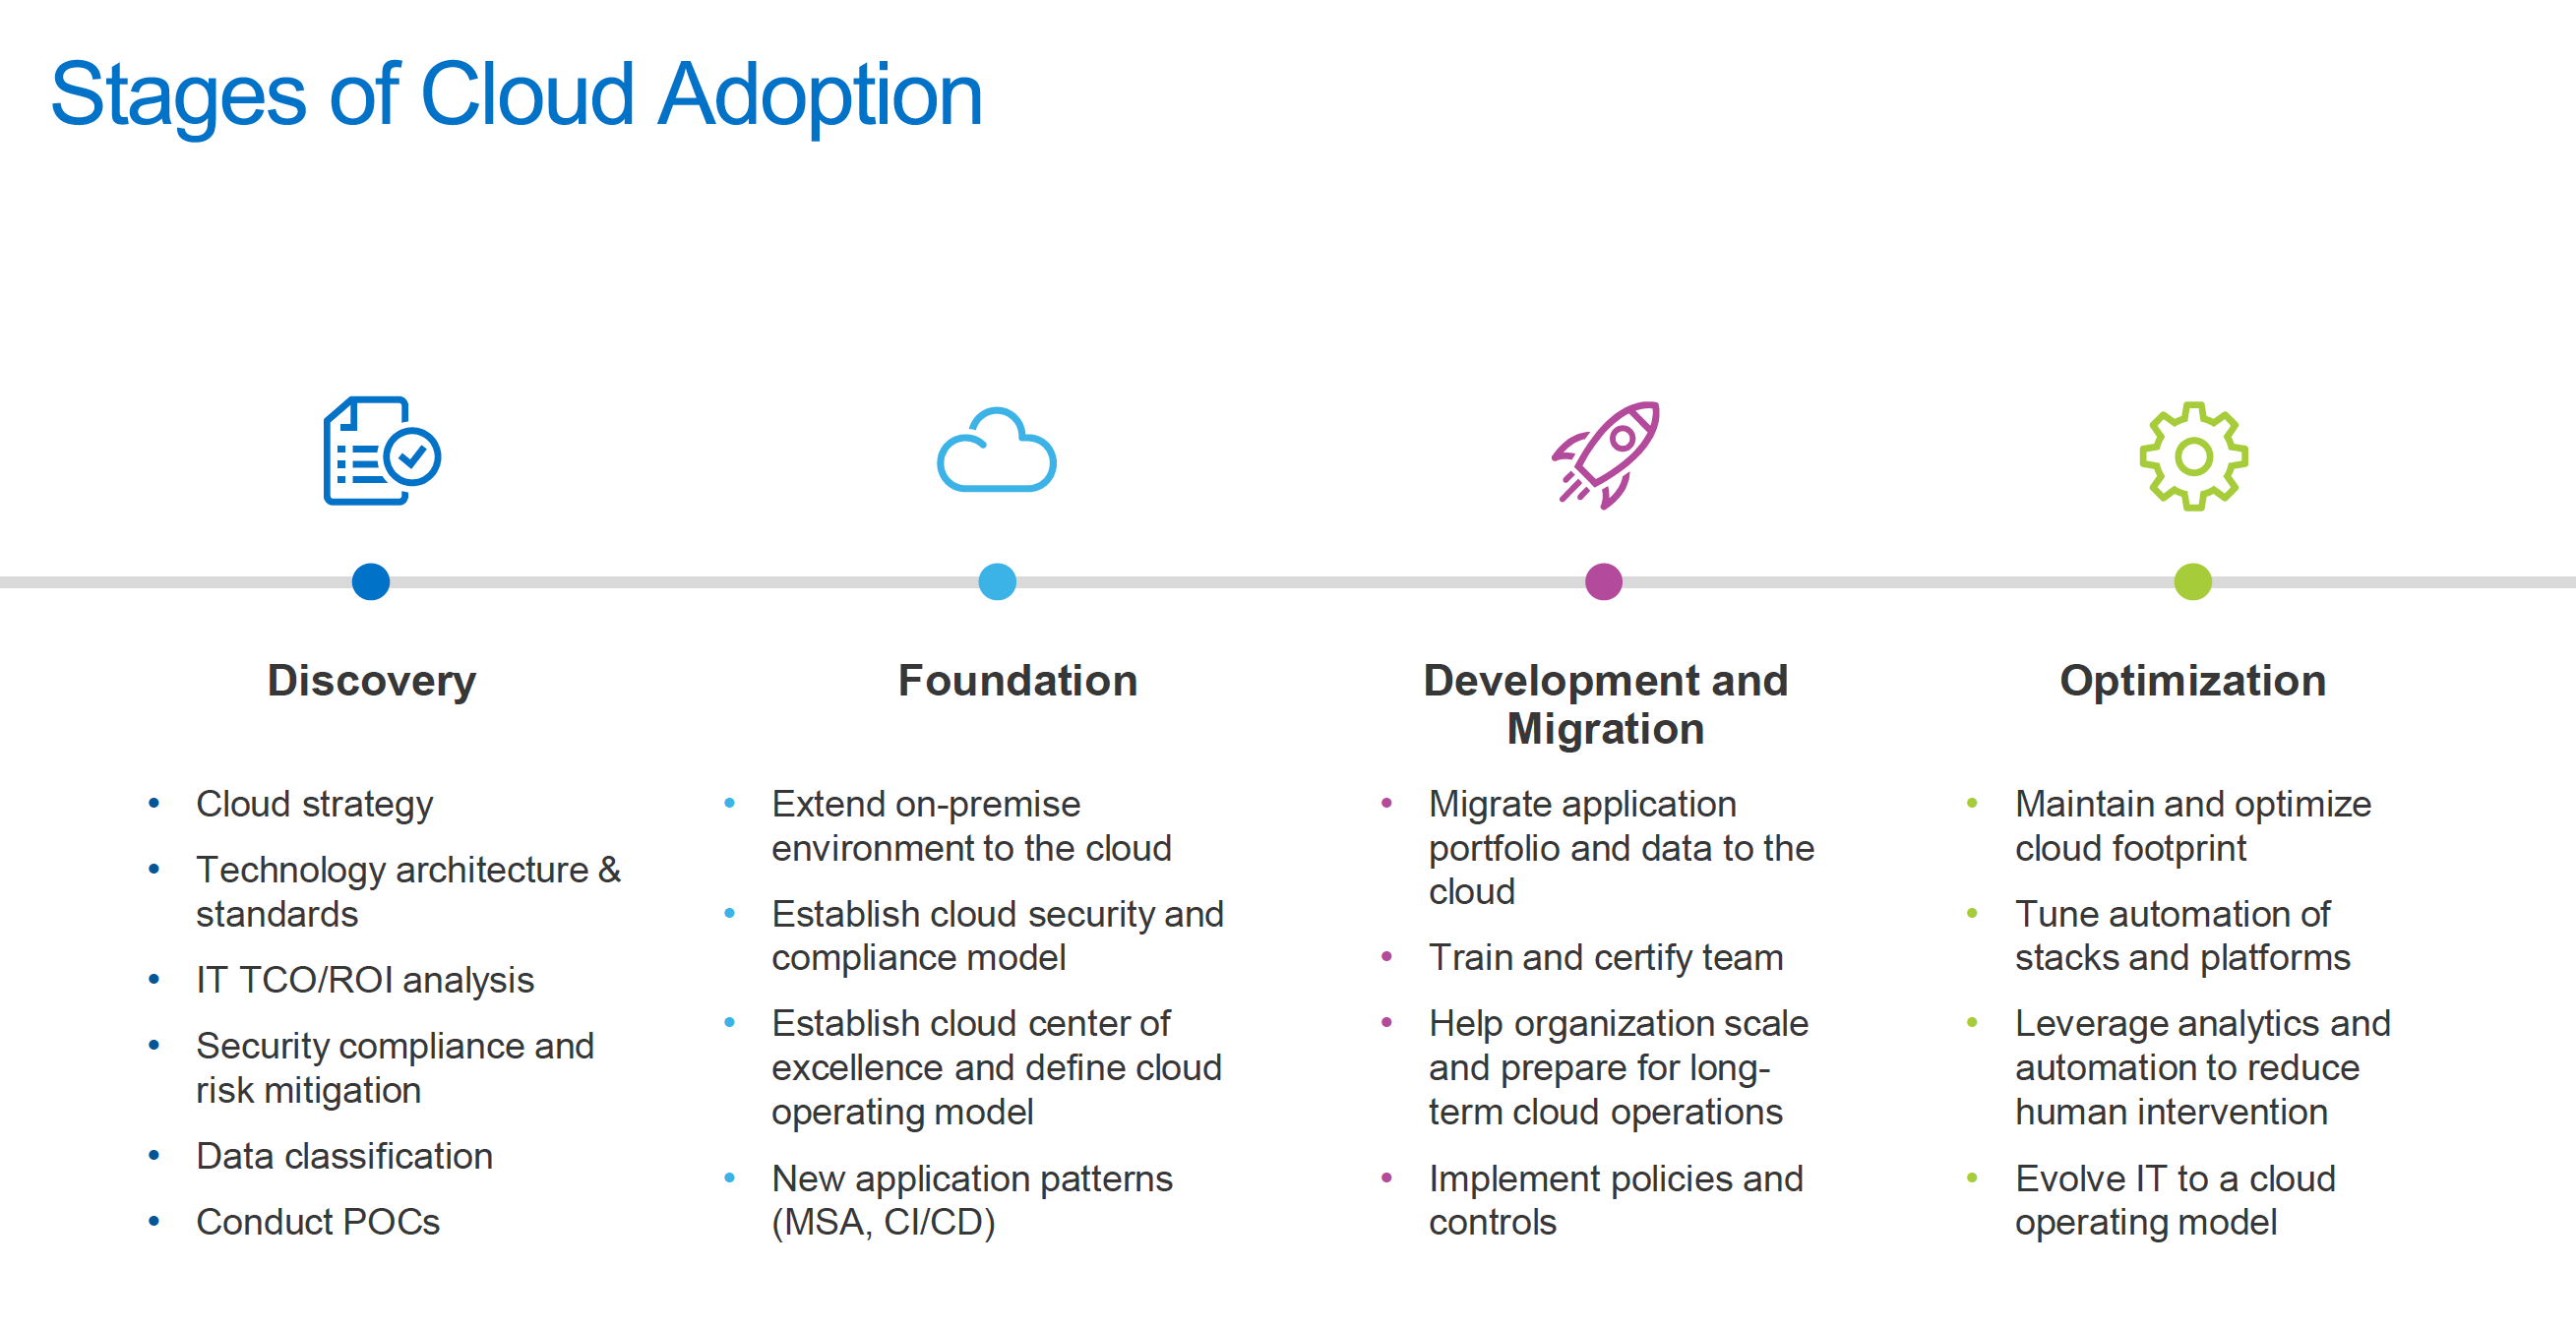 Slalom stages of cloud adoption